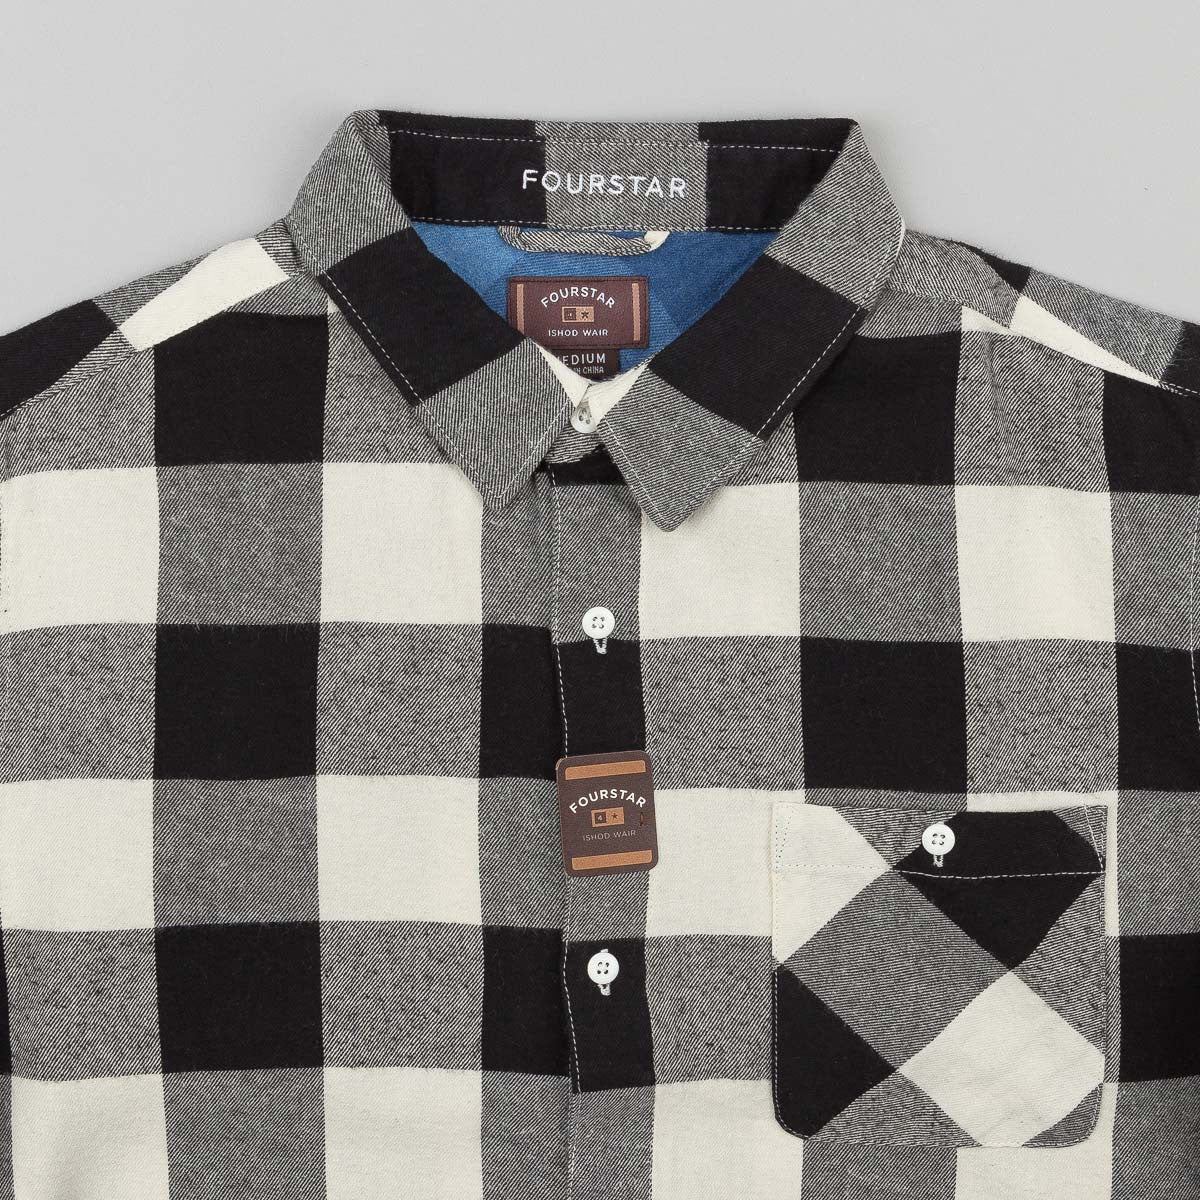 Fourstar X Ishod Wair Buffalo Long Sleeve Shirt - Ecru